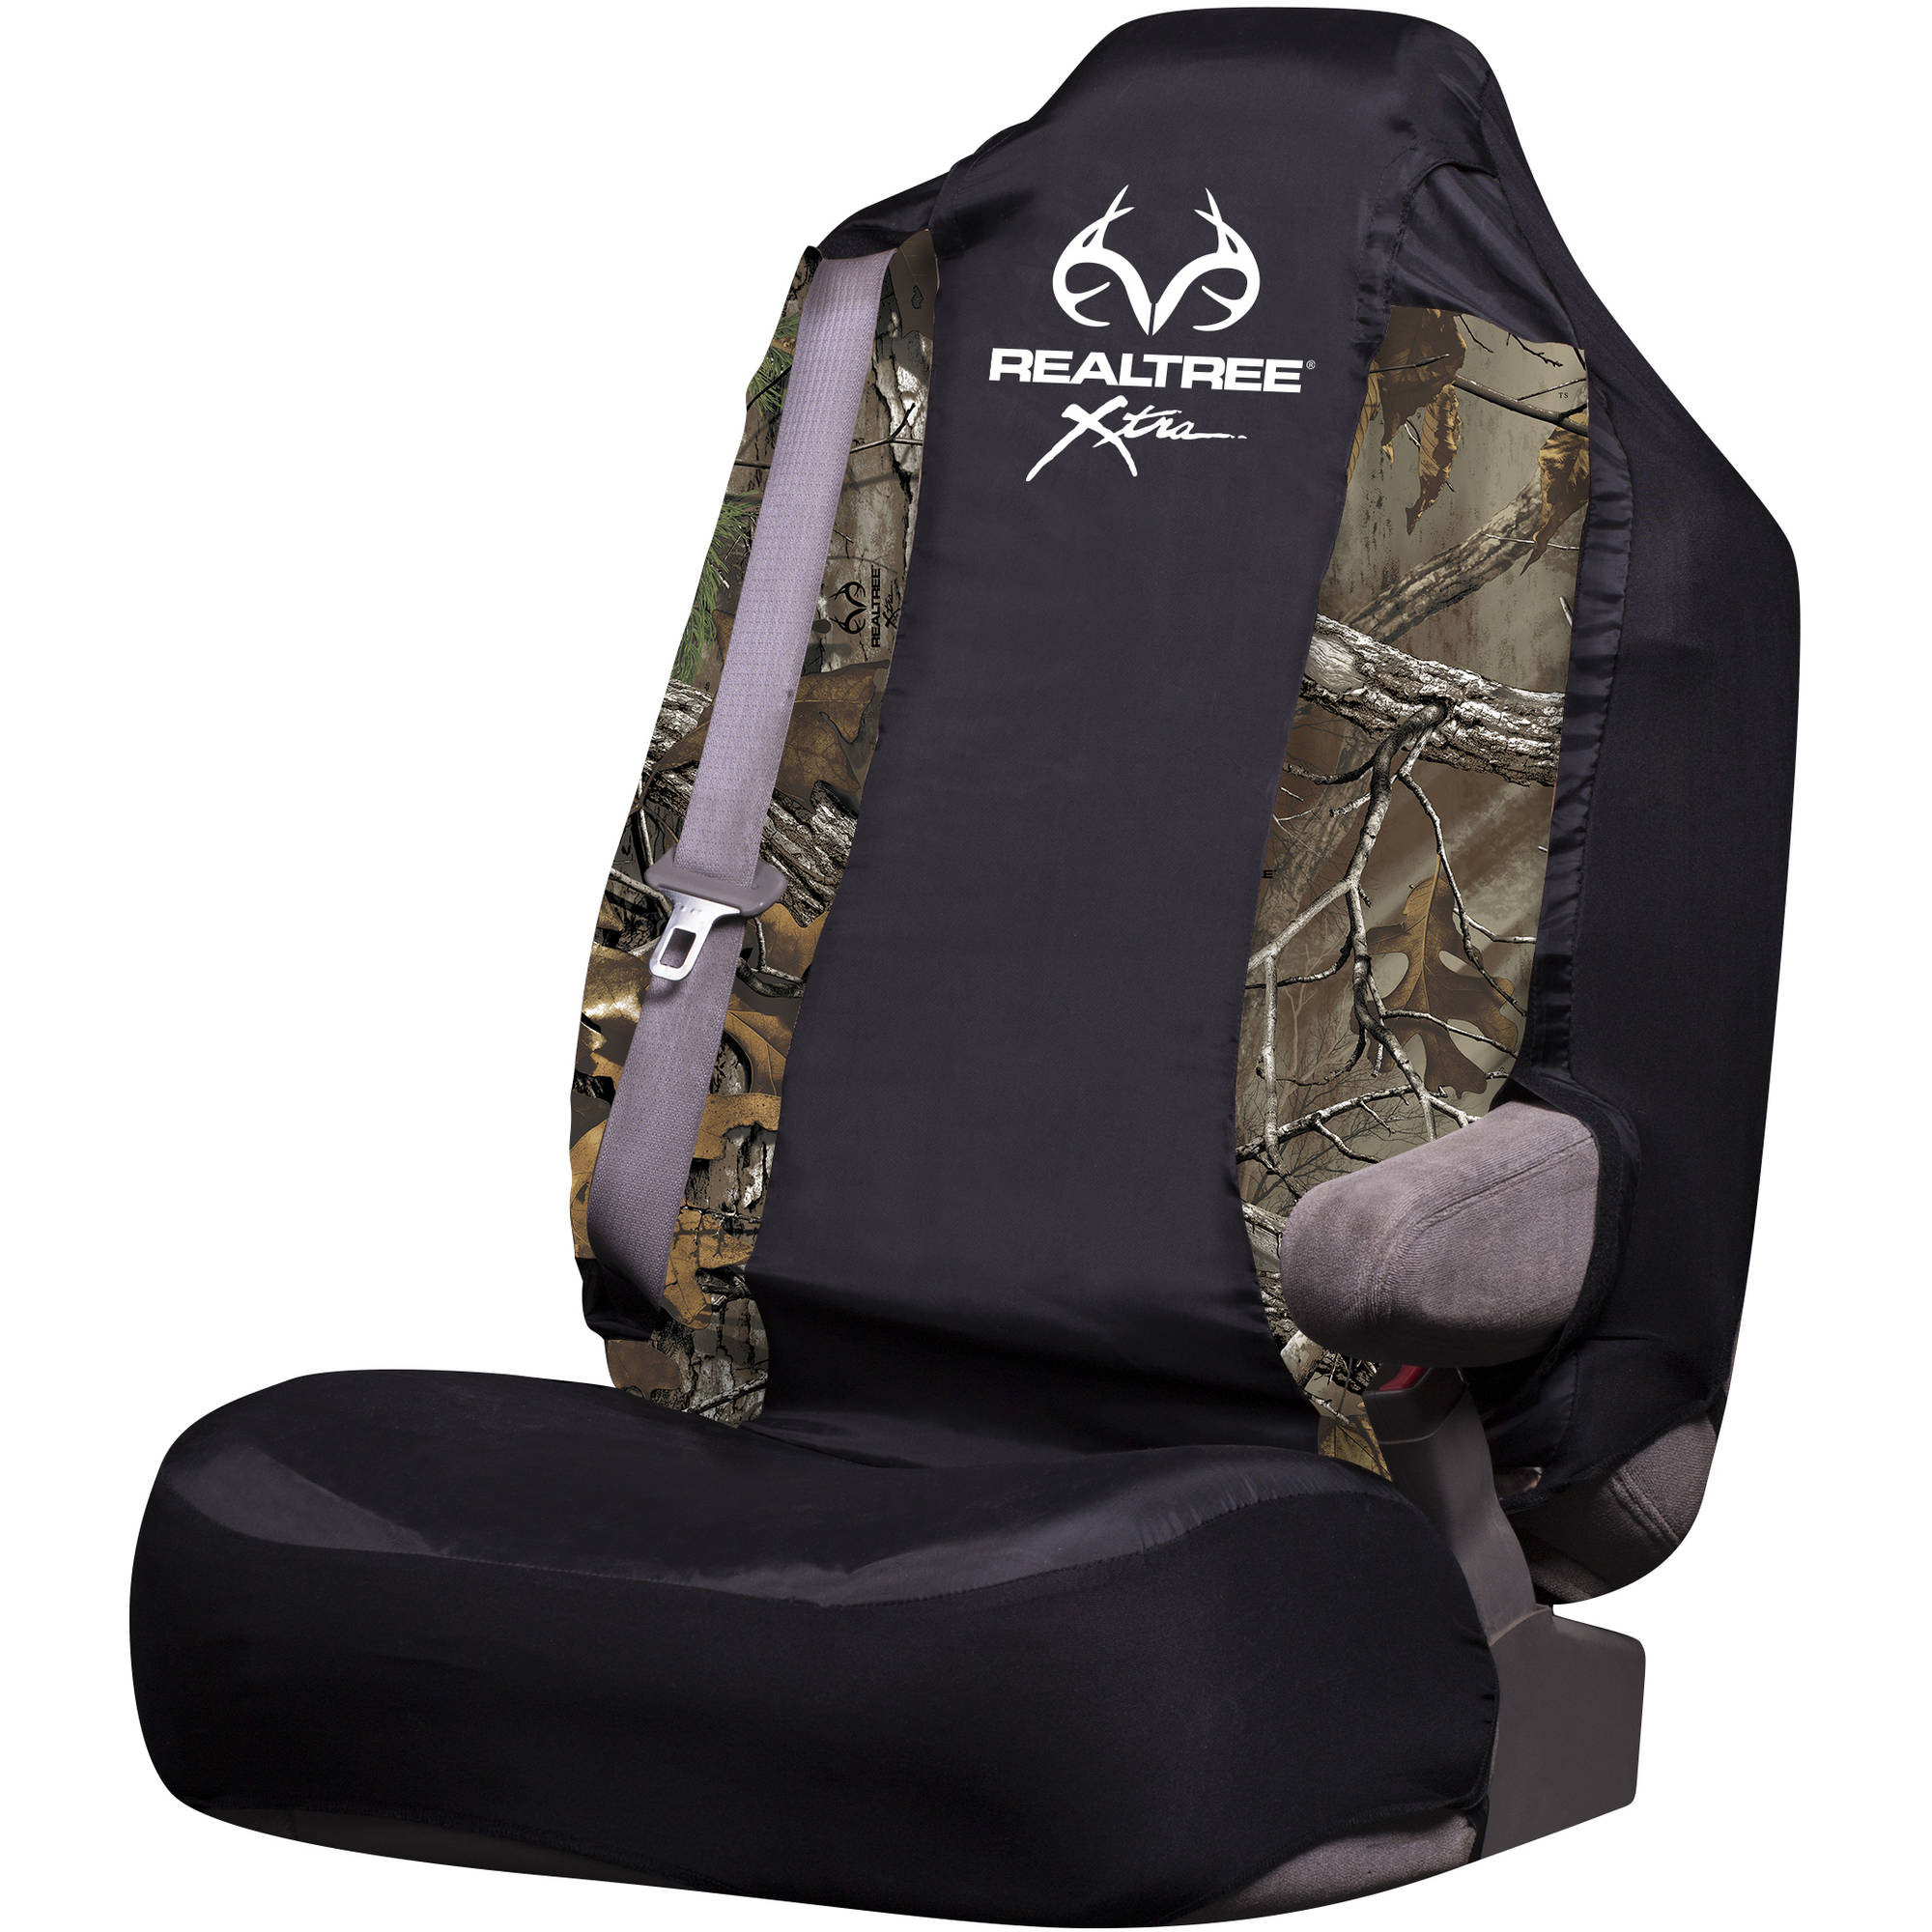 Realtree Xtra Camo Universal Seat Cover